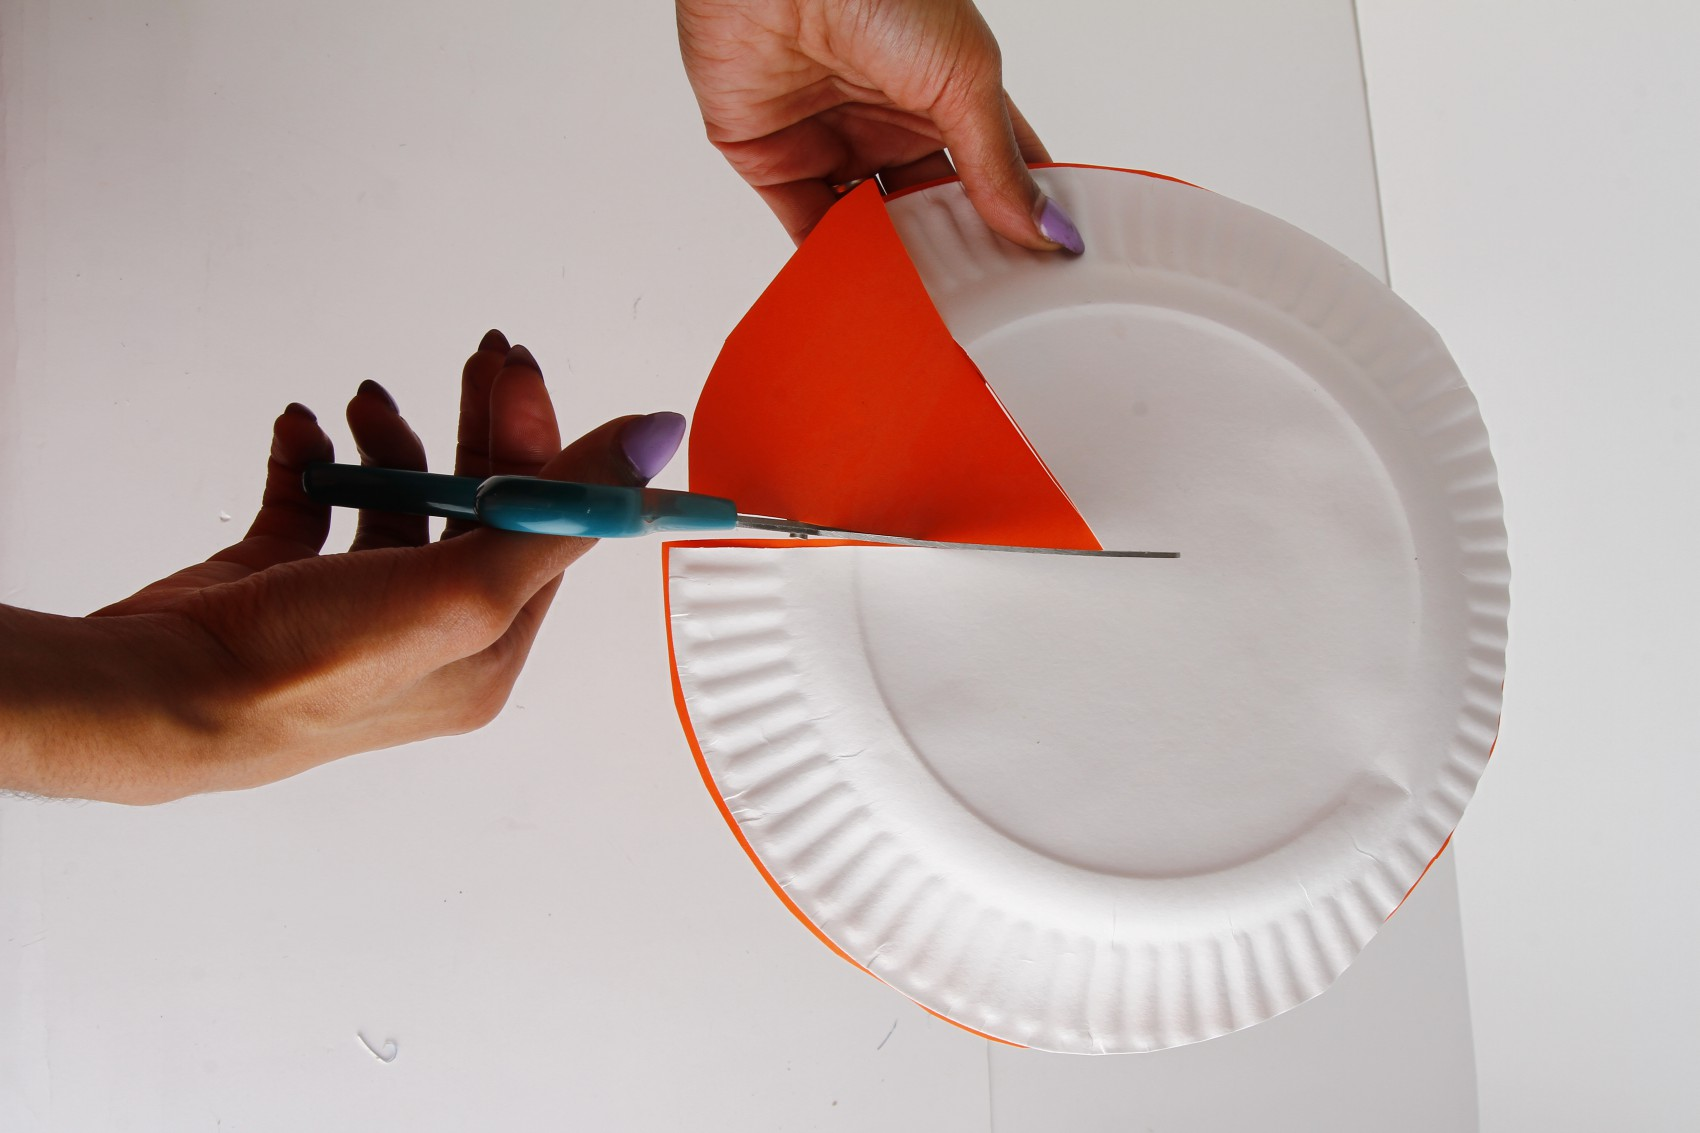 Cut shape out of paper plate